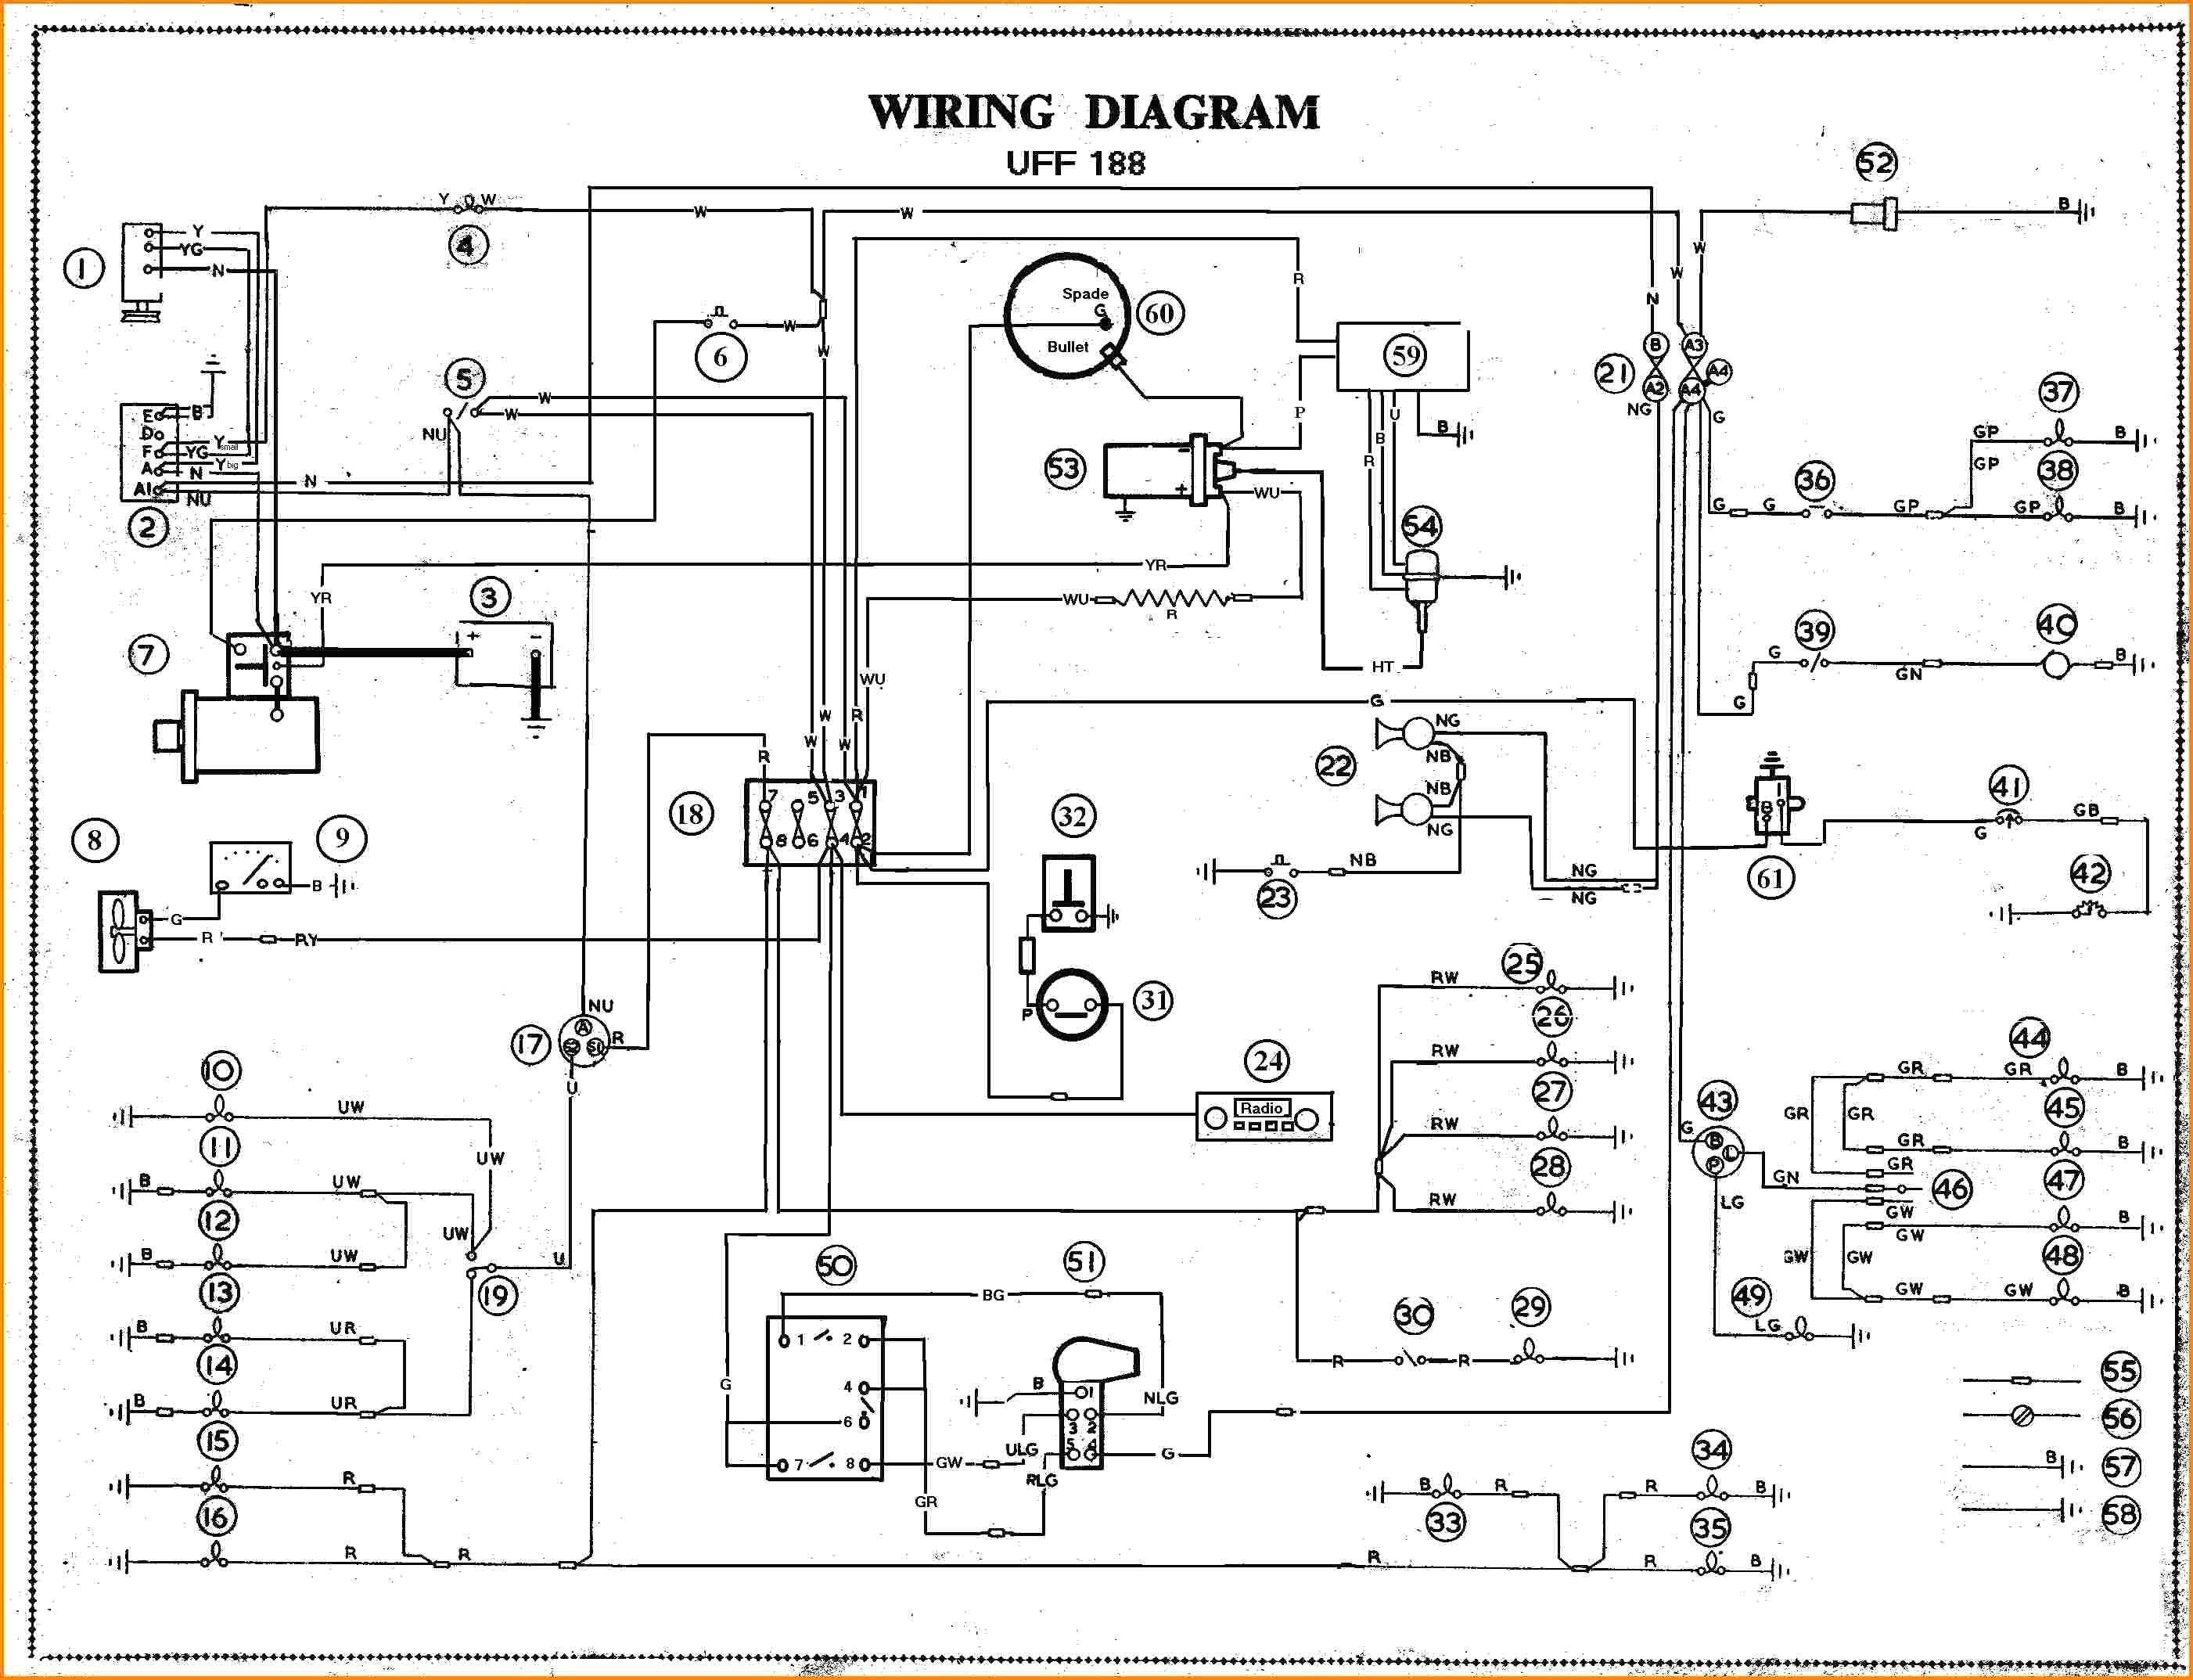 classic mini engine diagram best headlight wiring diagram diagram of classic  mini engine diagram best headlight